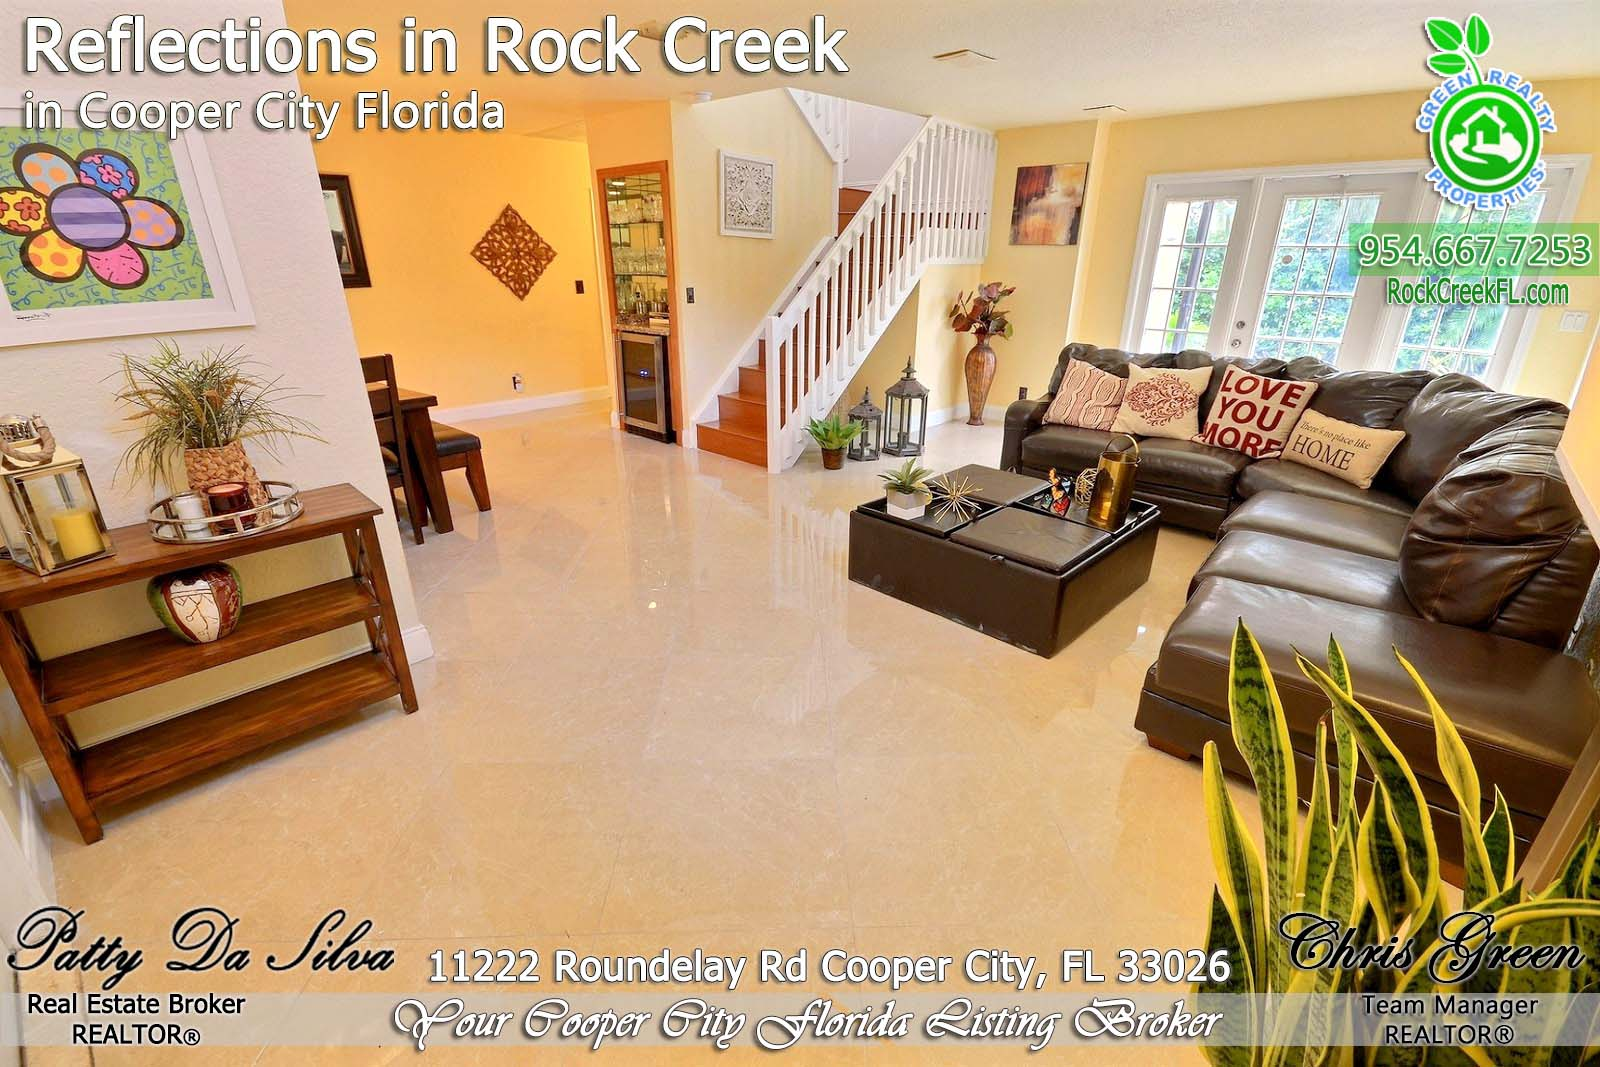 Cooper City Homes For Sale - Reflections in Rock Creek Homes Fo Sale (22)